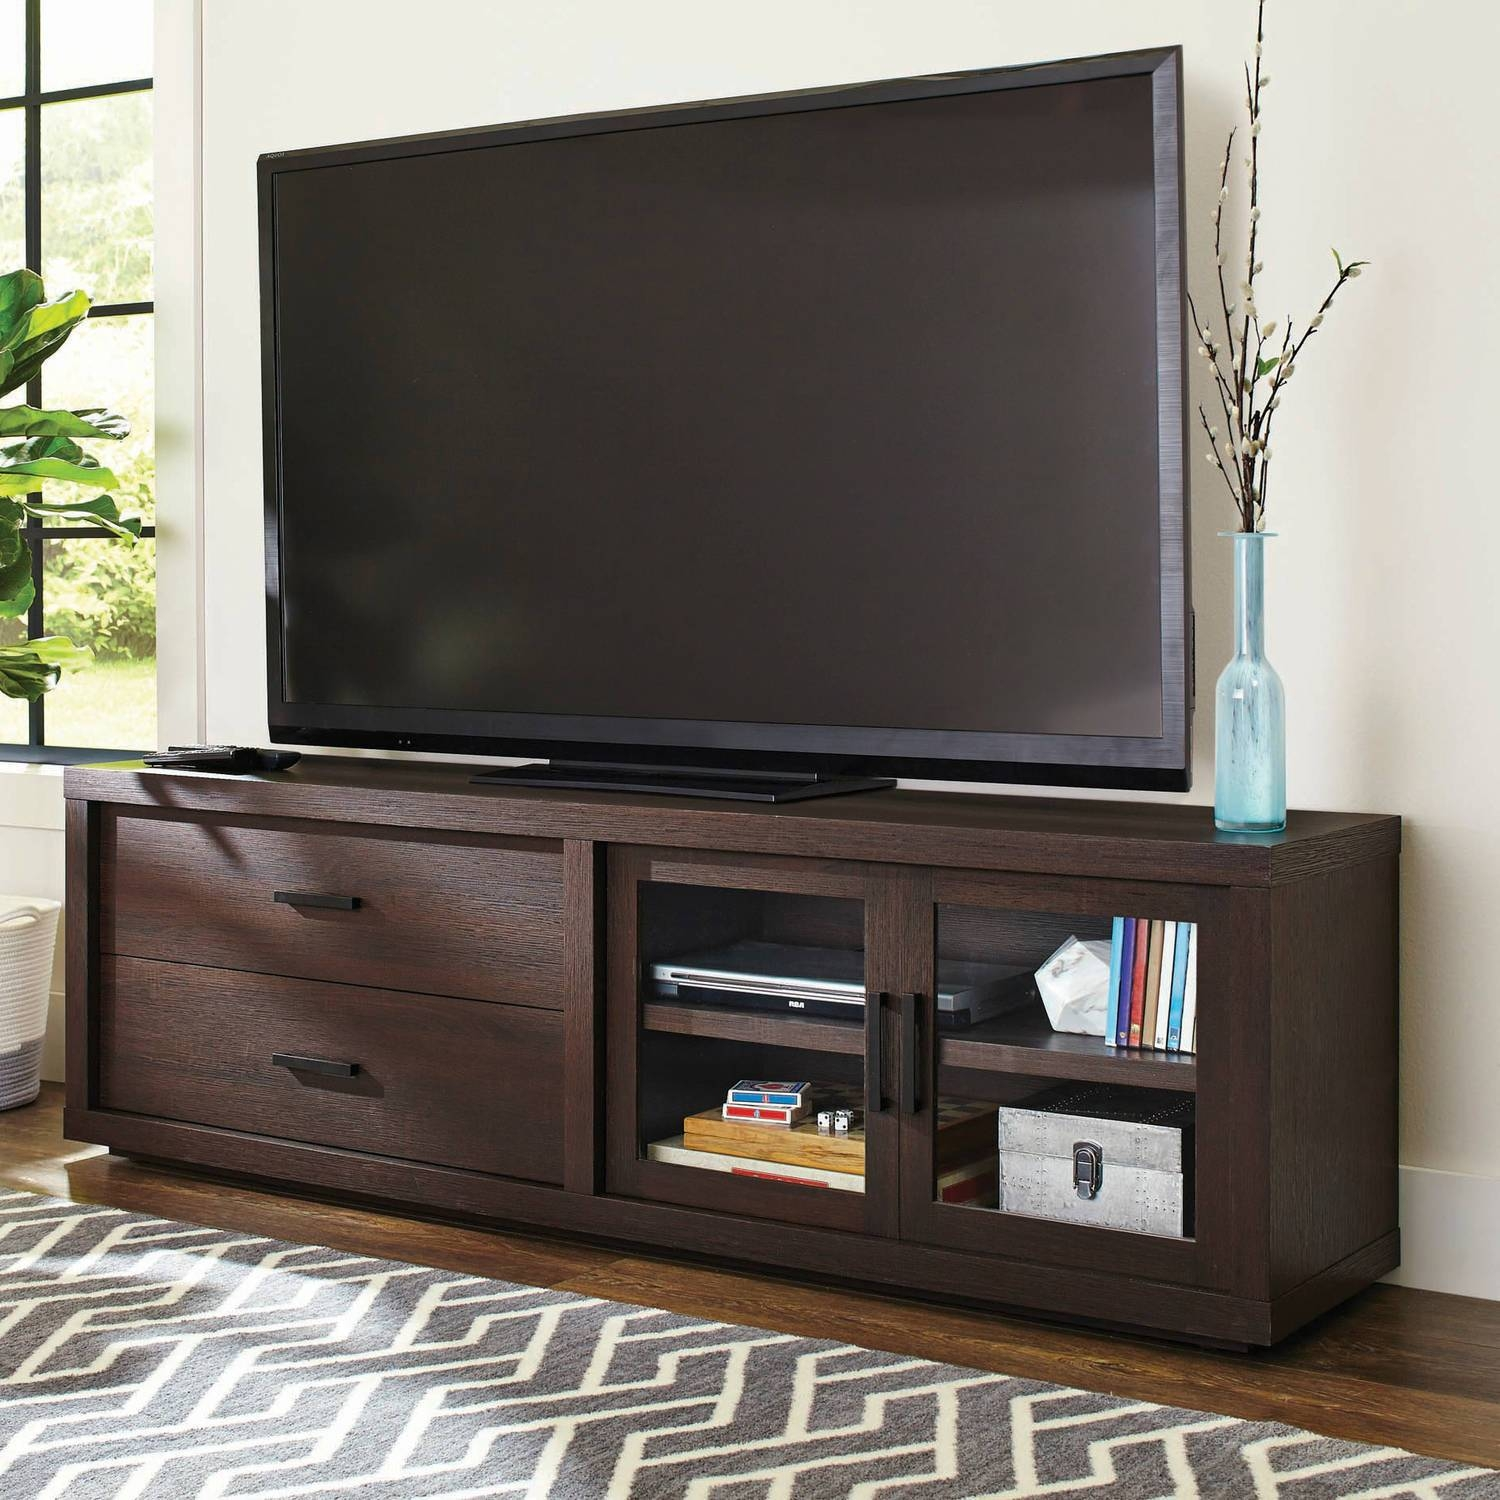 Better Homes And Gardens Steele Tv Stand For Tv's Up To 80 with Expresso Tv Stands (Image 6 of 15)